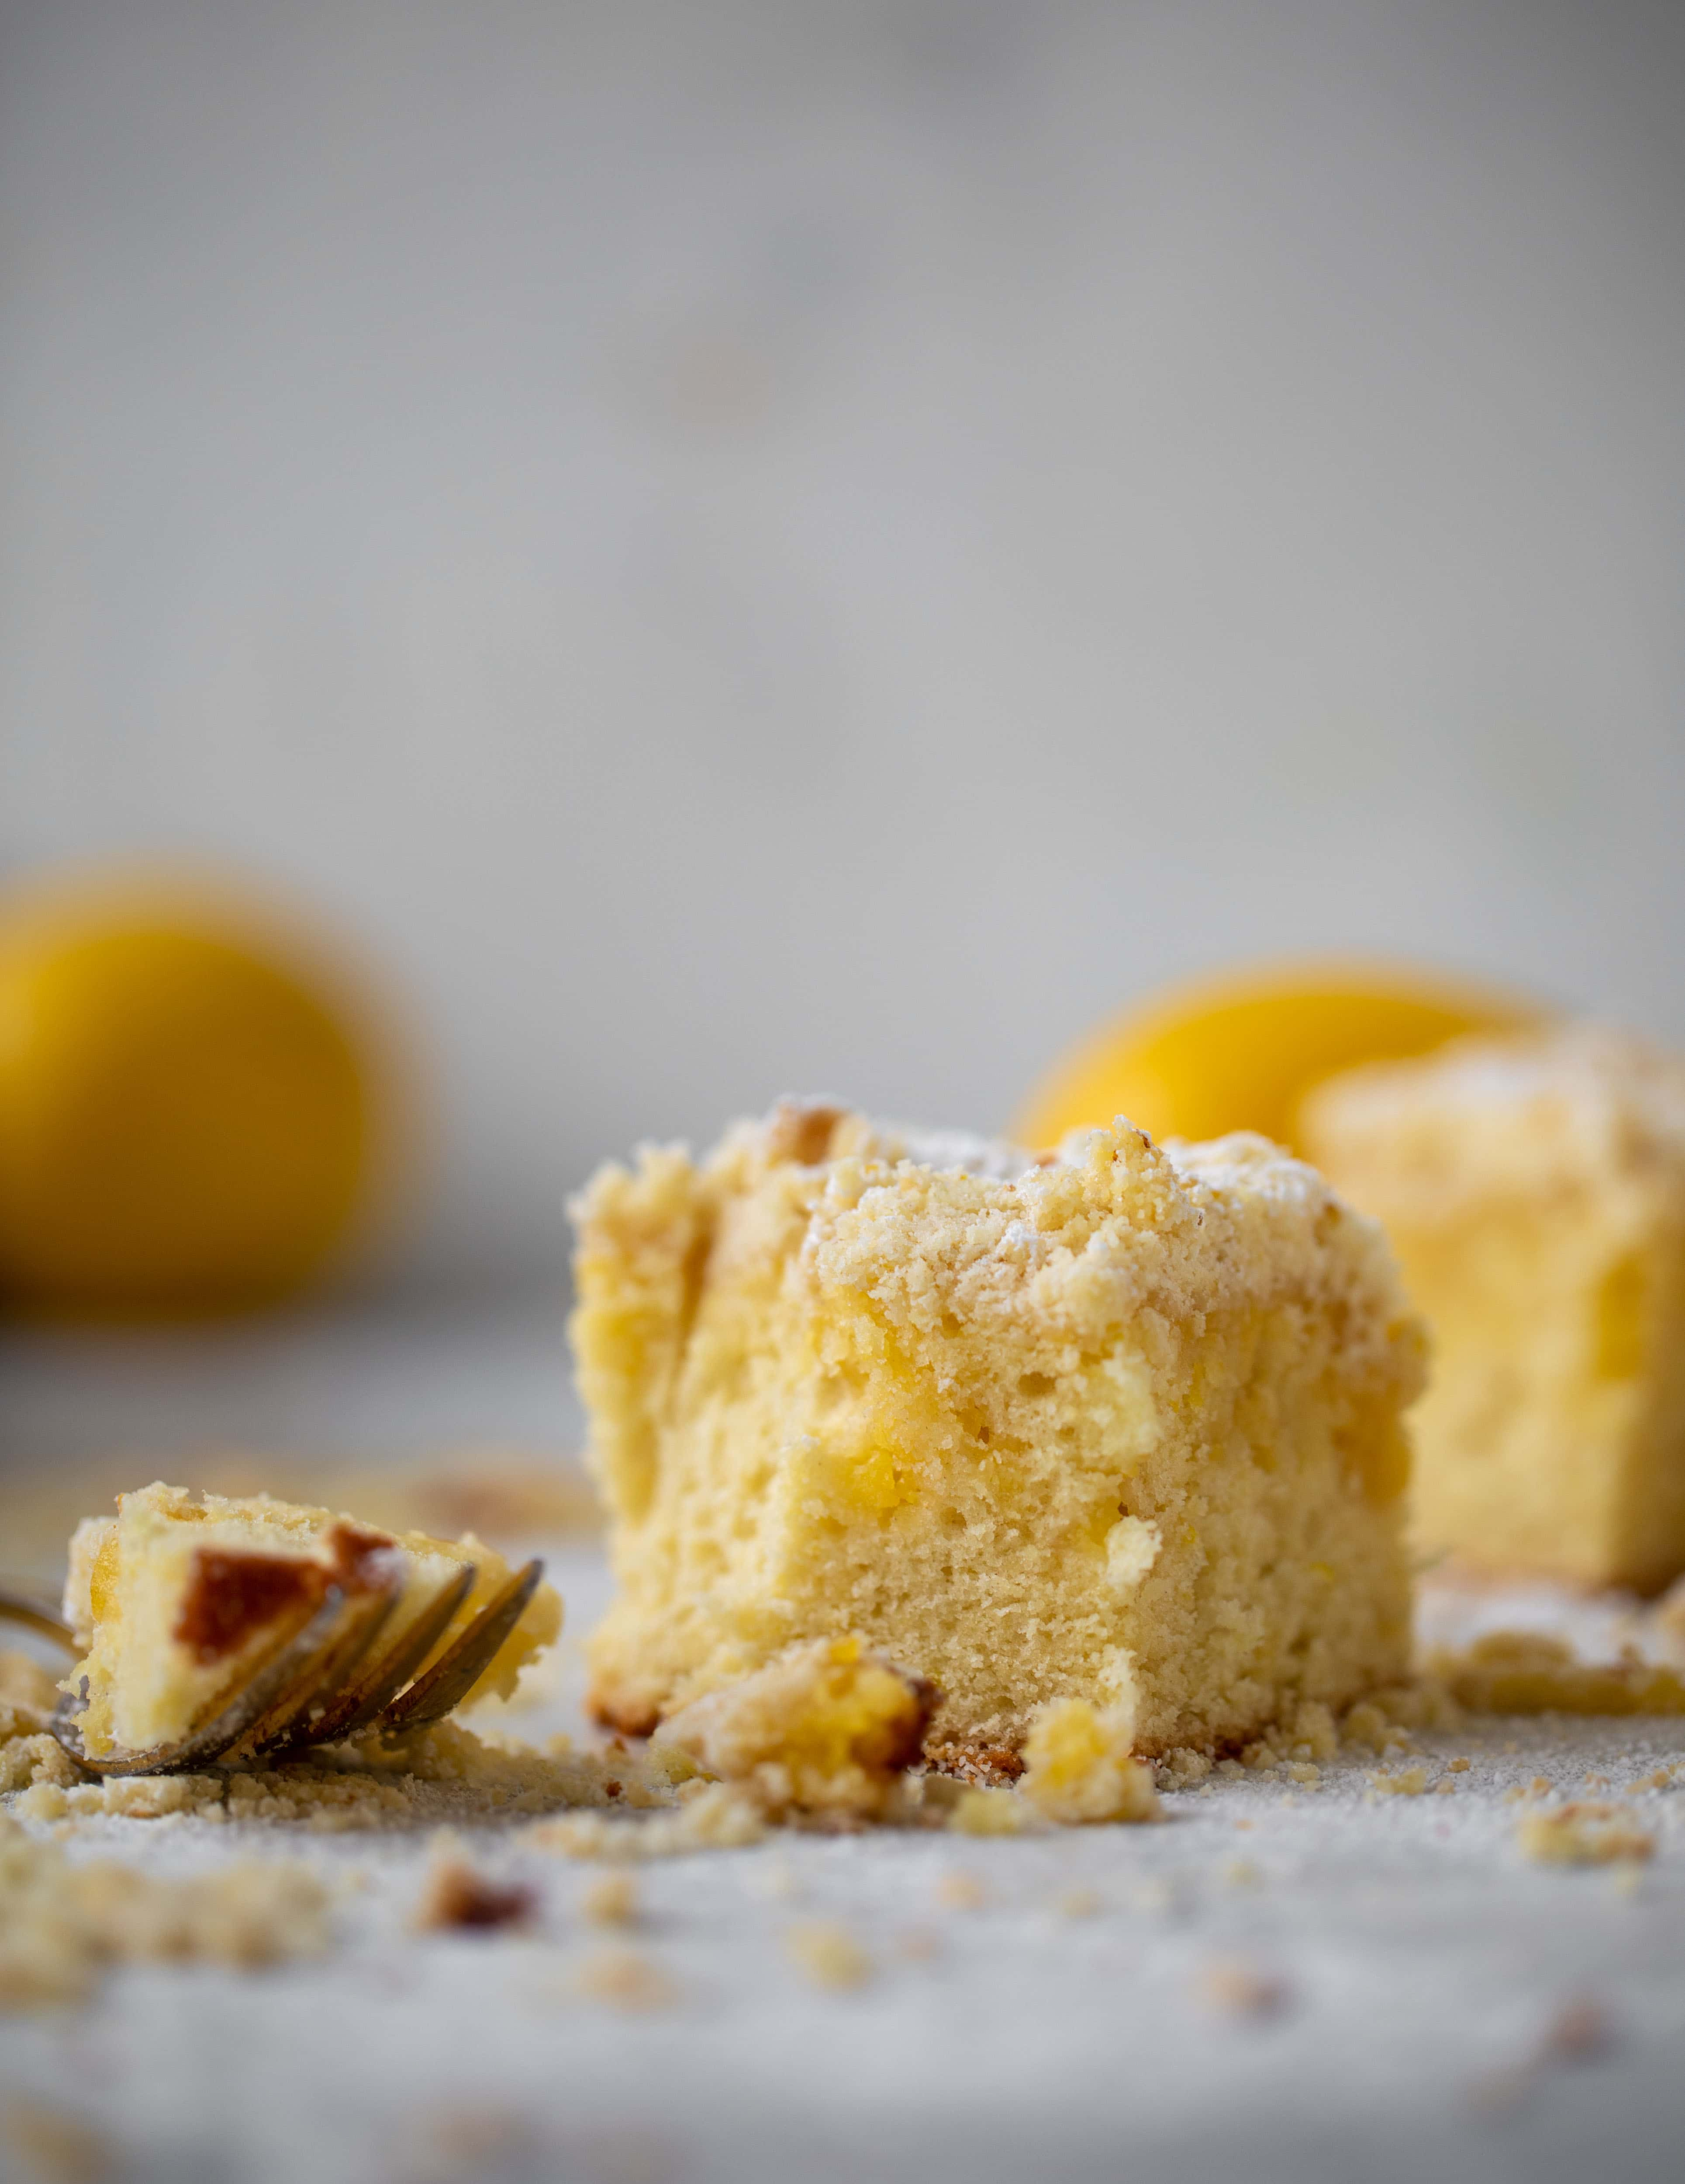 This lemon crumb cake is incredible! Lemon cake, lemon curd and lemon crumb come together for this delicious breakfast or dessert bite!